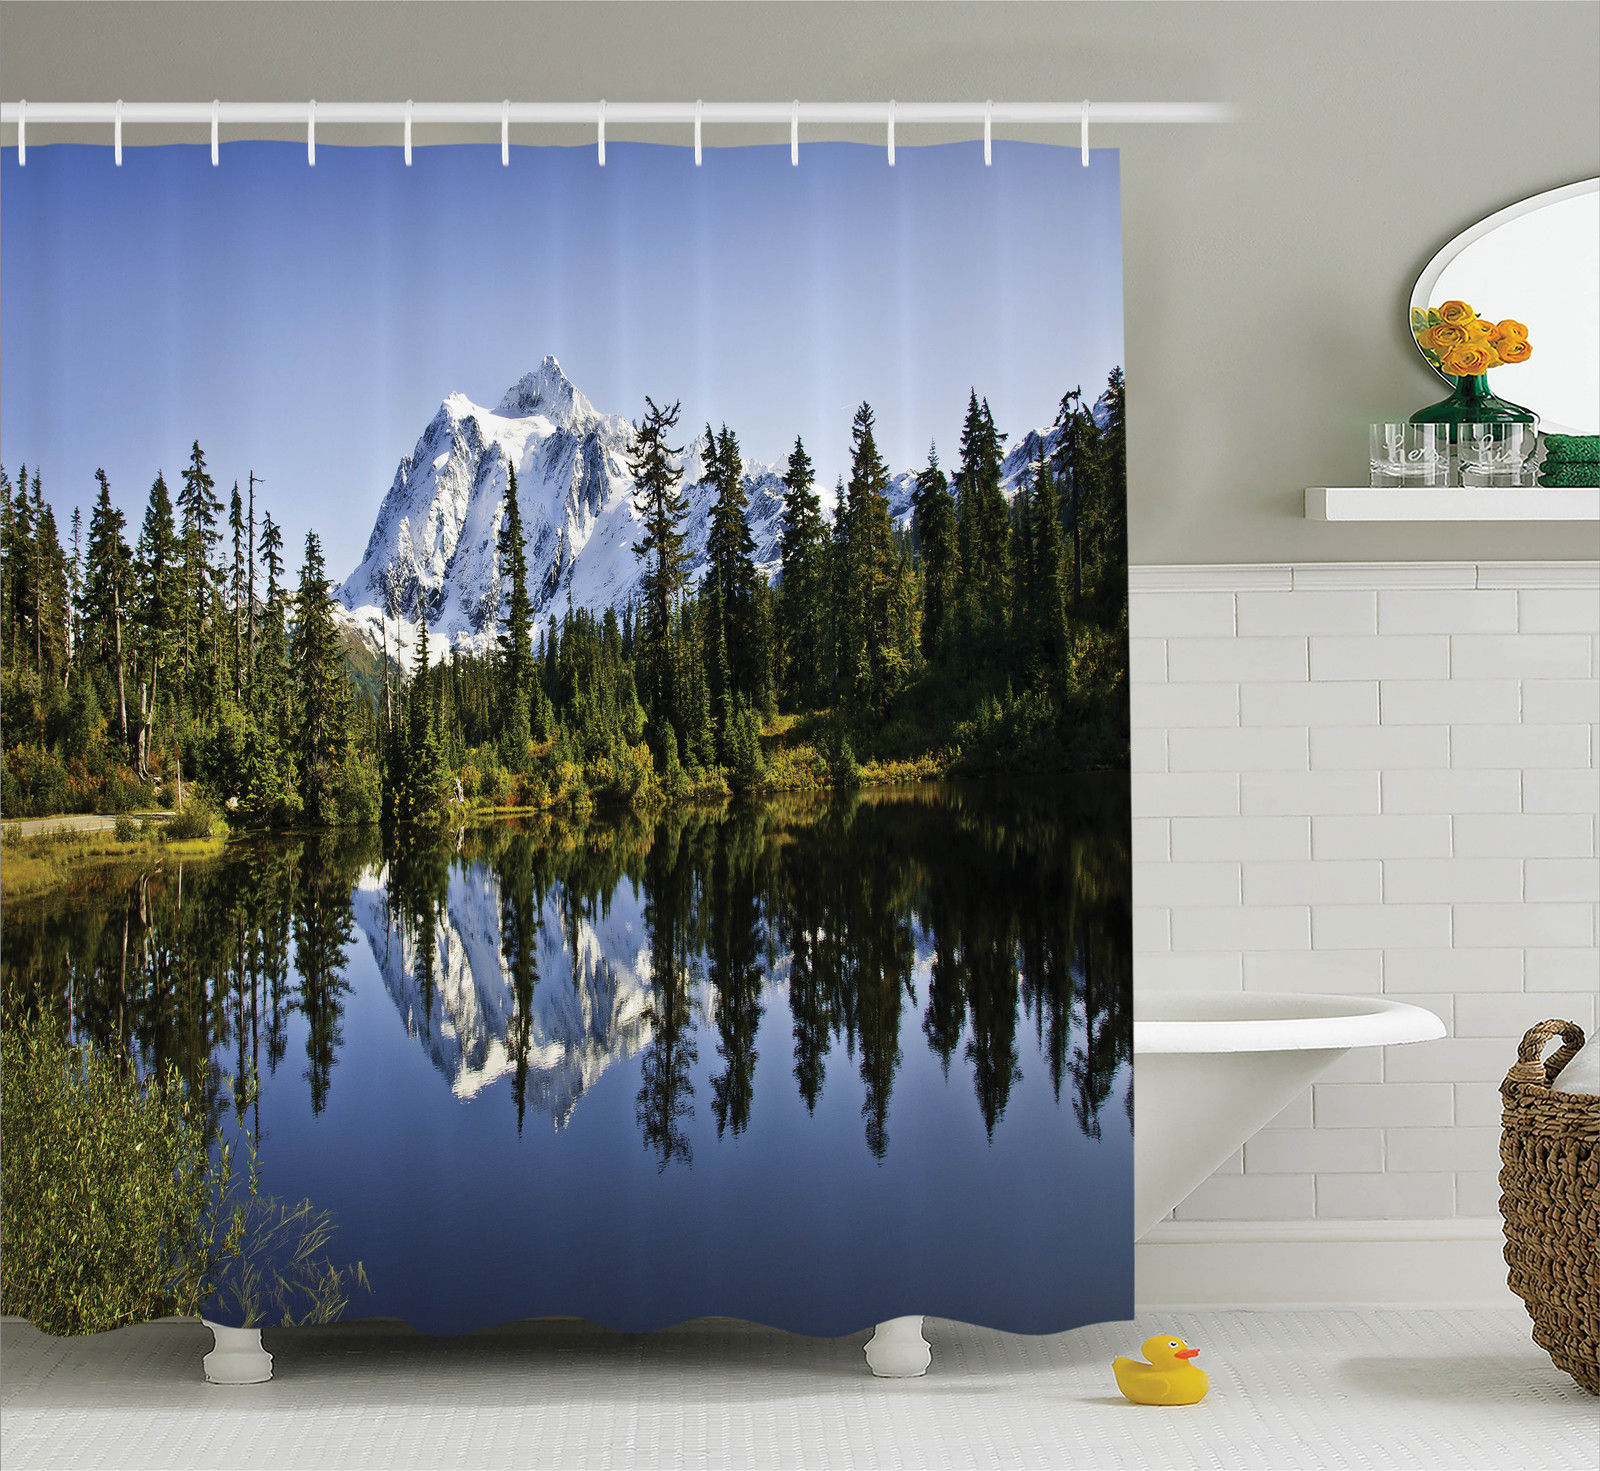 Lake House Decor Fall Colored Trees And Snowy Mountain Landscape With Crystal Lake Nature Photo, Bathroom Accessories, 69W X 84L Inches... by Kozmos